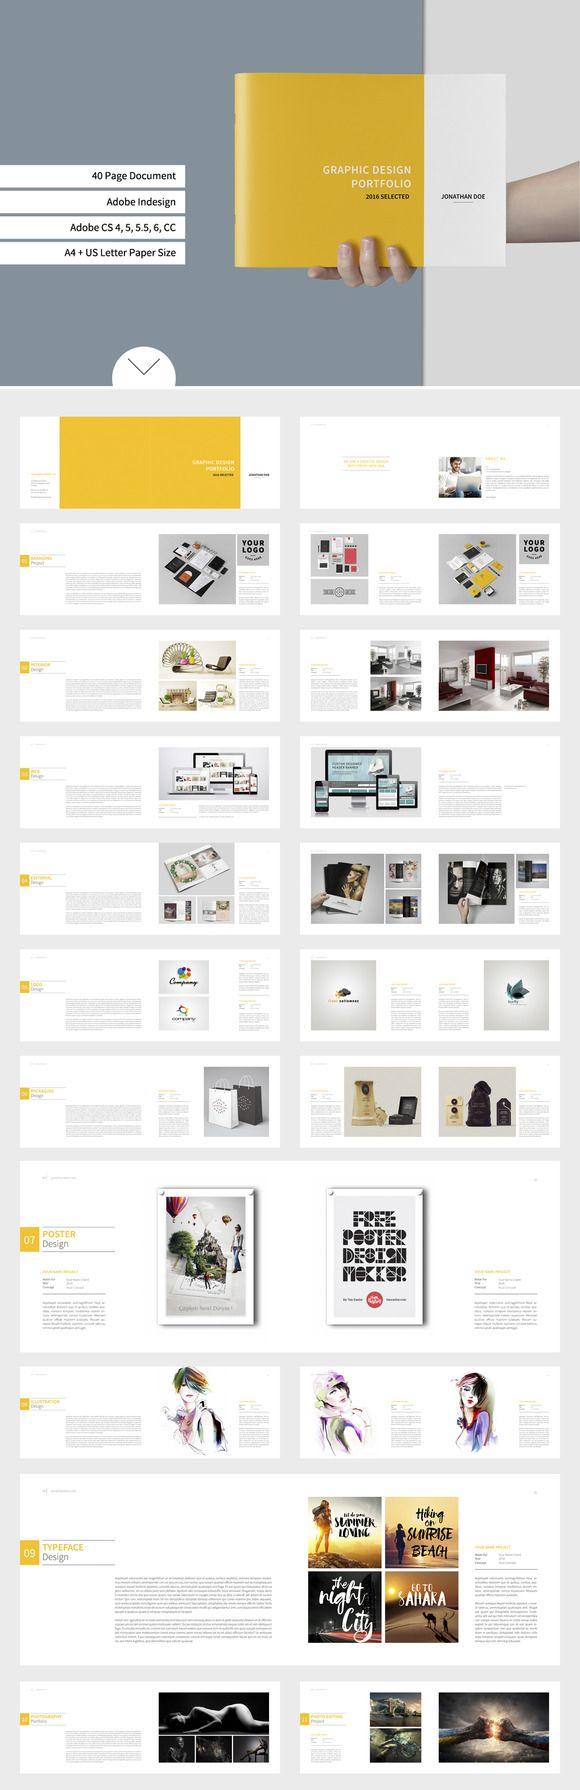 Best 25+ Graphic Design Portfolios Ideas On Pinterest | Portfolio Design, Design  Portfolio Layout And Portfolio Design Books